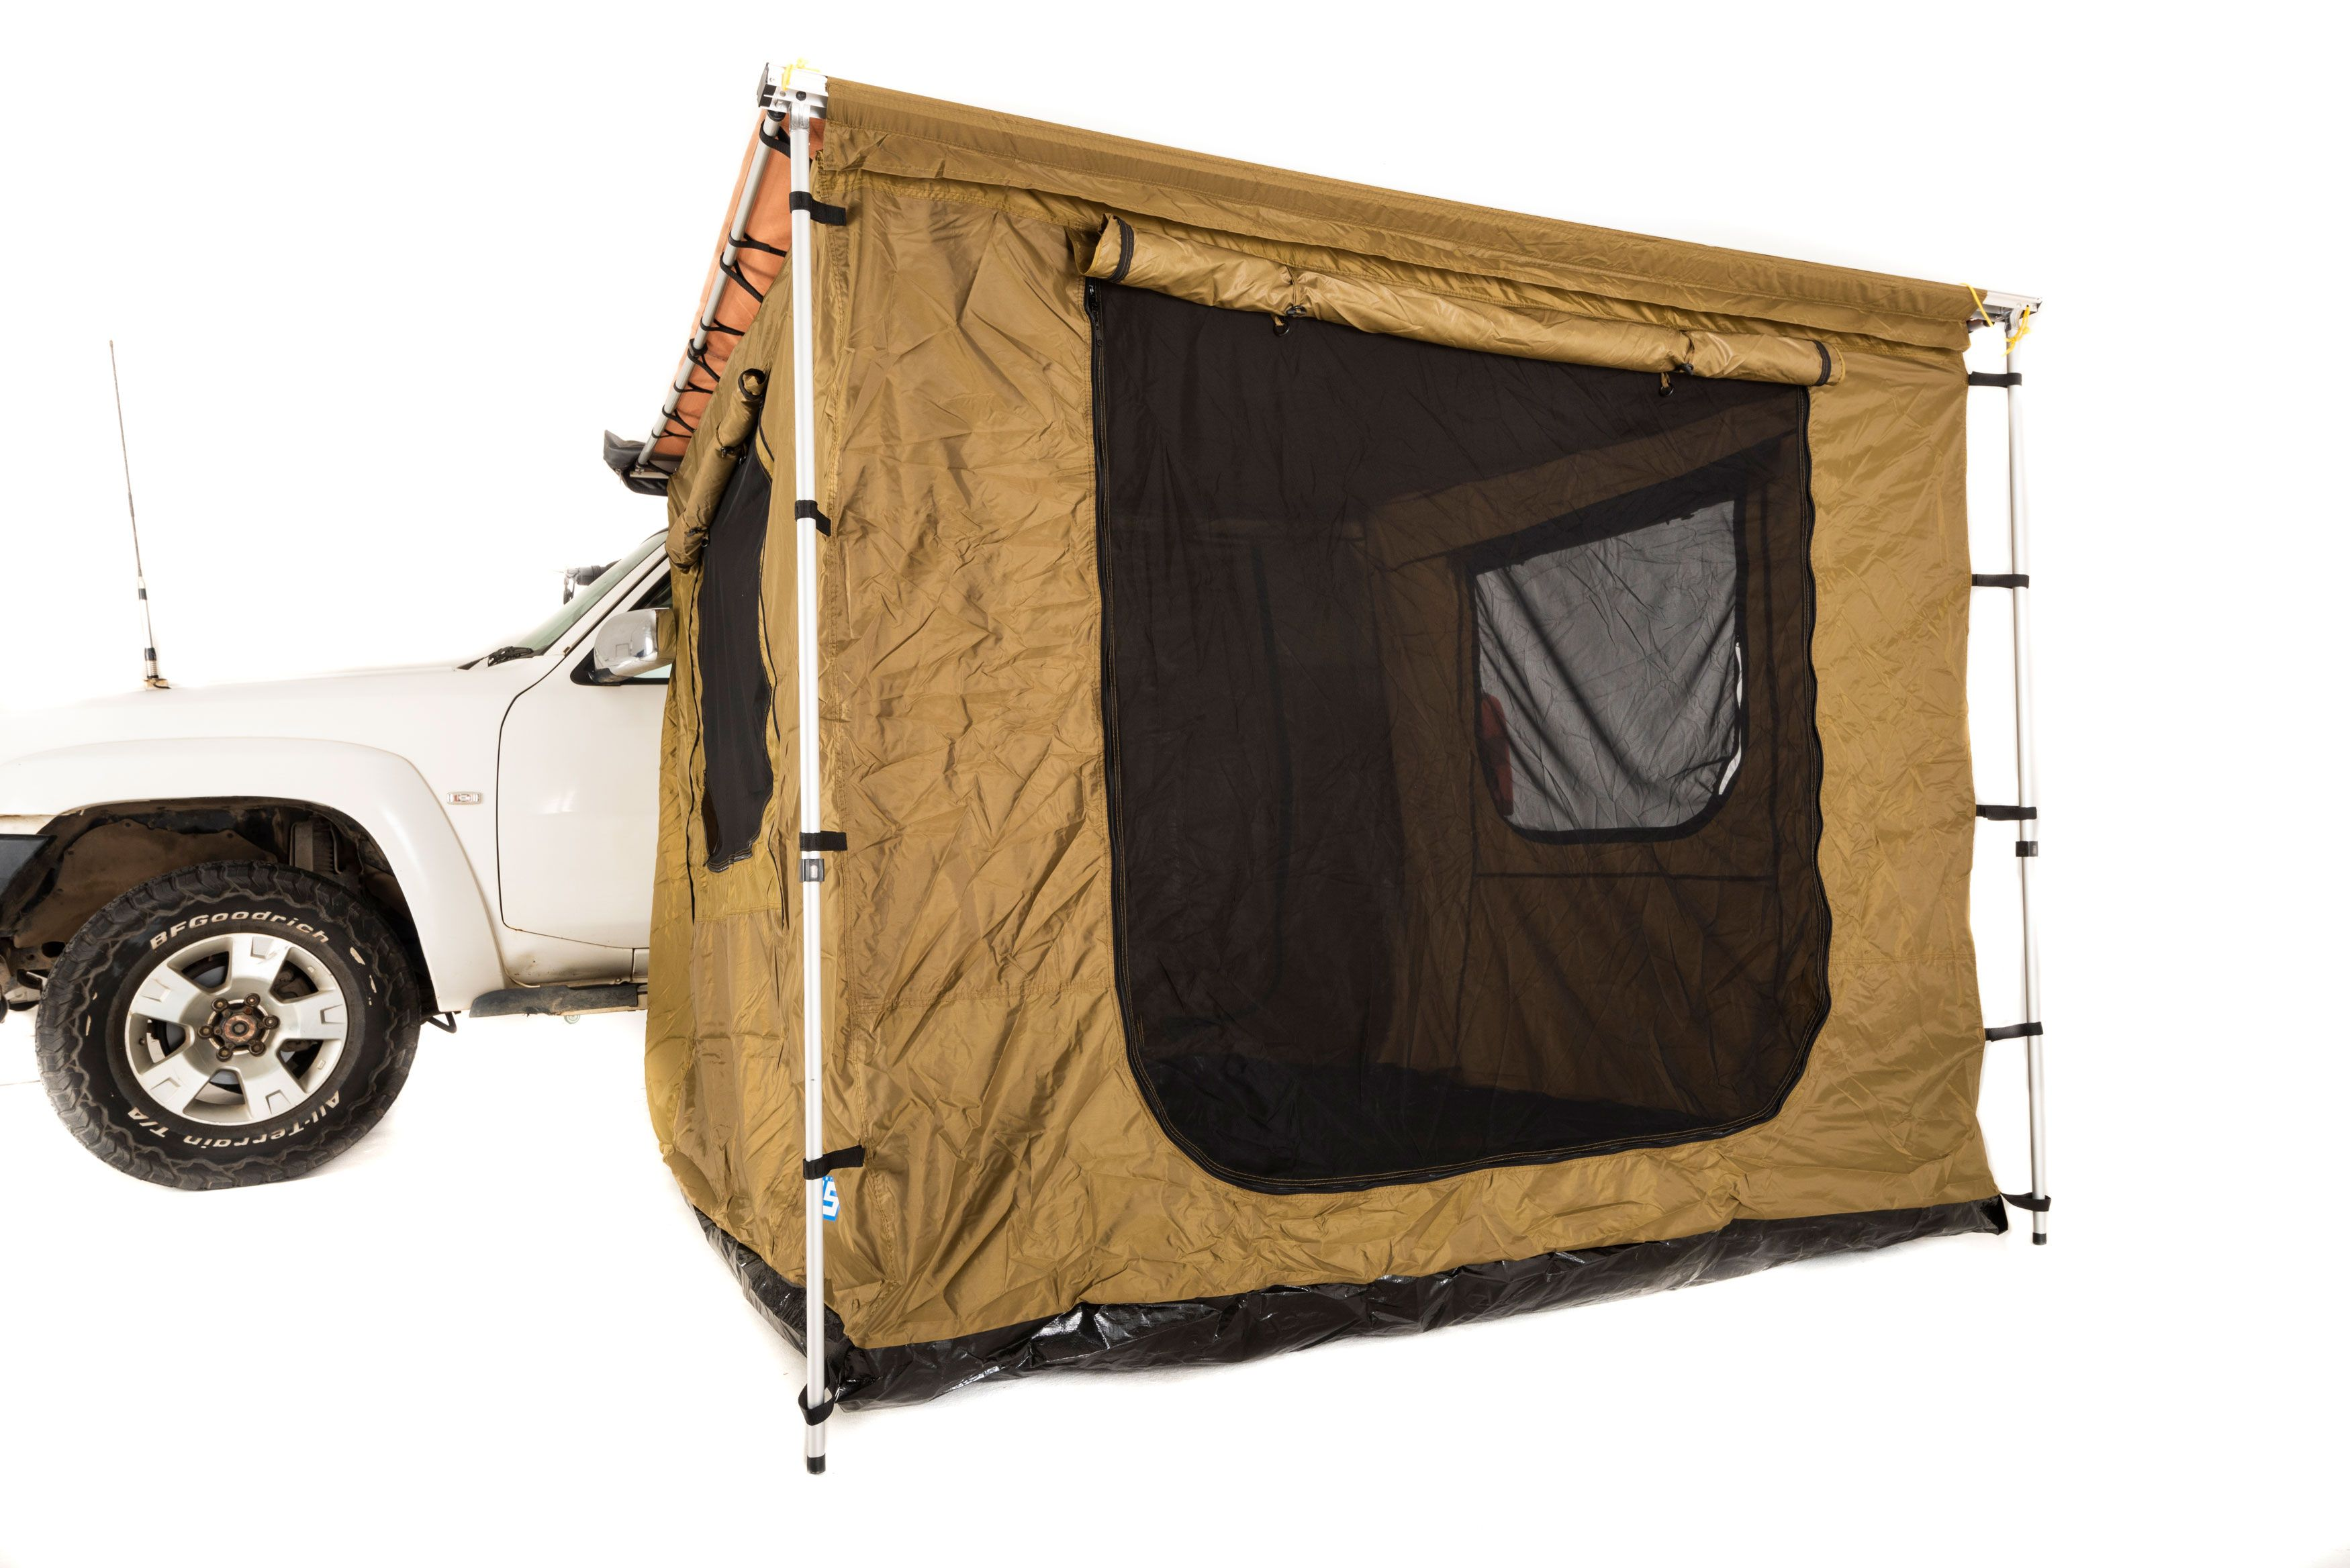 Adventure Kings 2.5 x 2.5m OR 2 x 3m Awning Tent